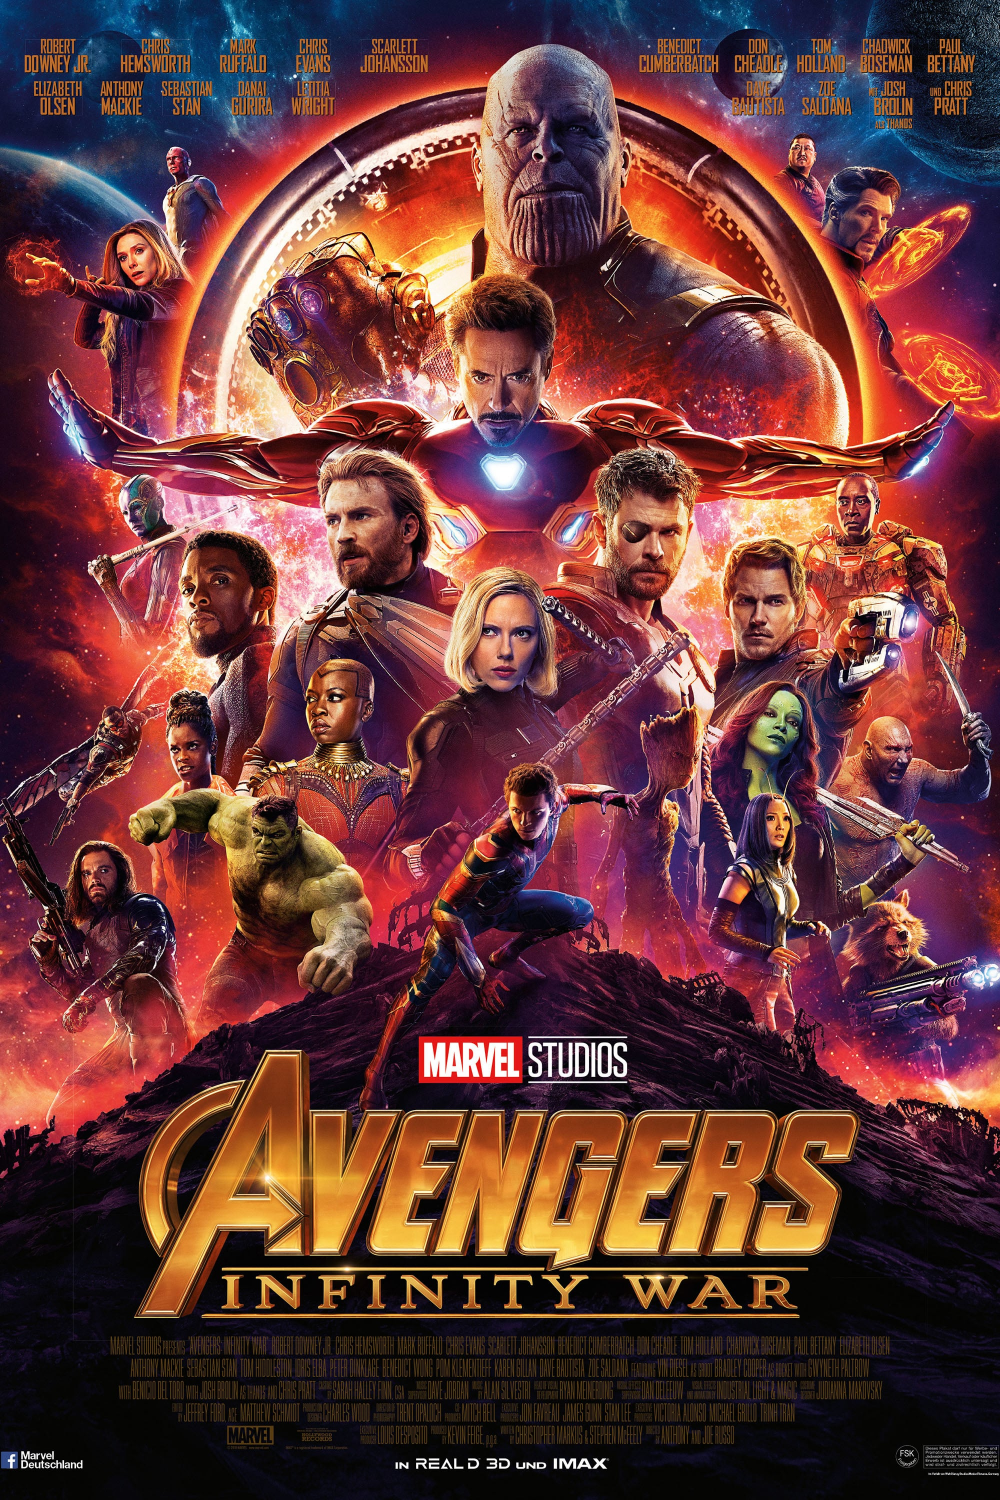 The Avengers Infinity Wars Movie Poster Culture Posters 20 Off Avengers Movie Posters Marvel Movie Posters Avengers Poster